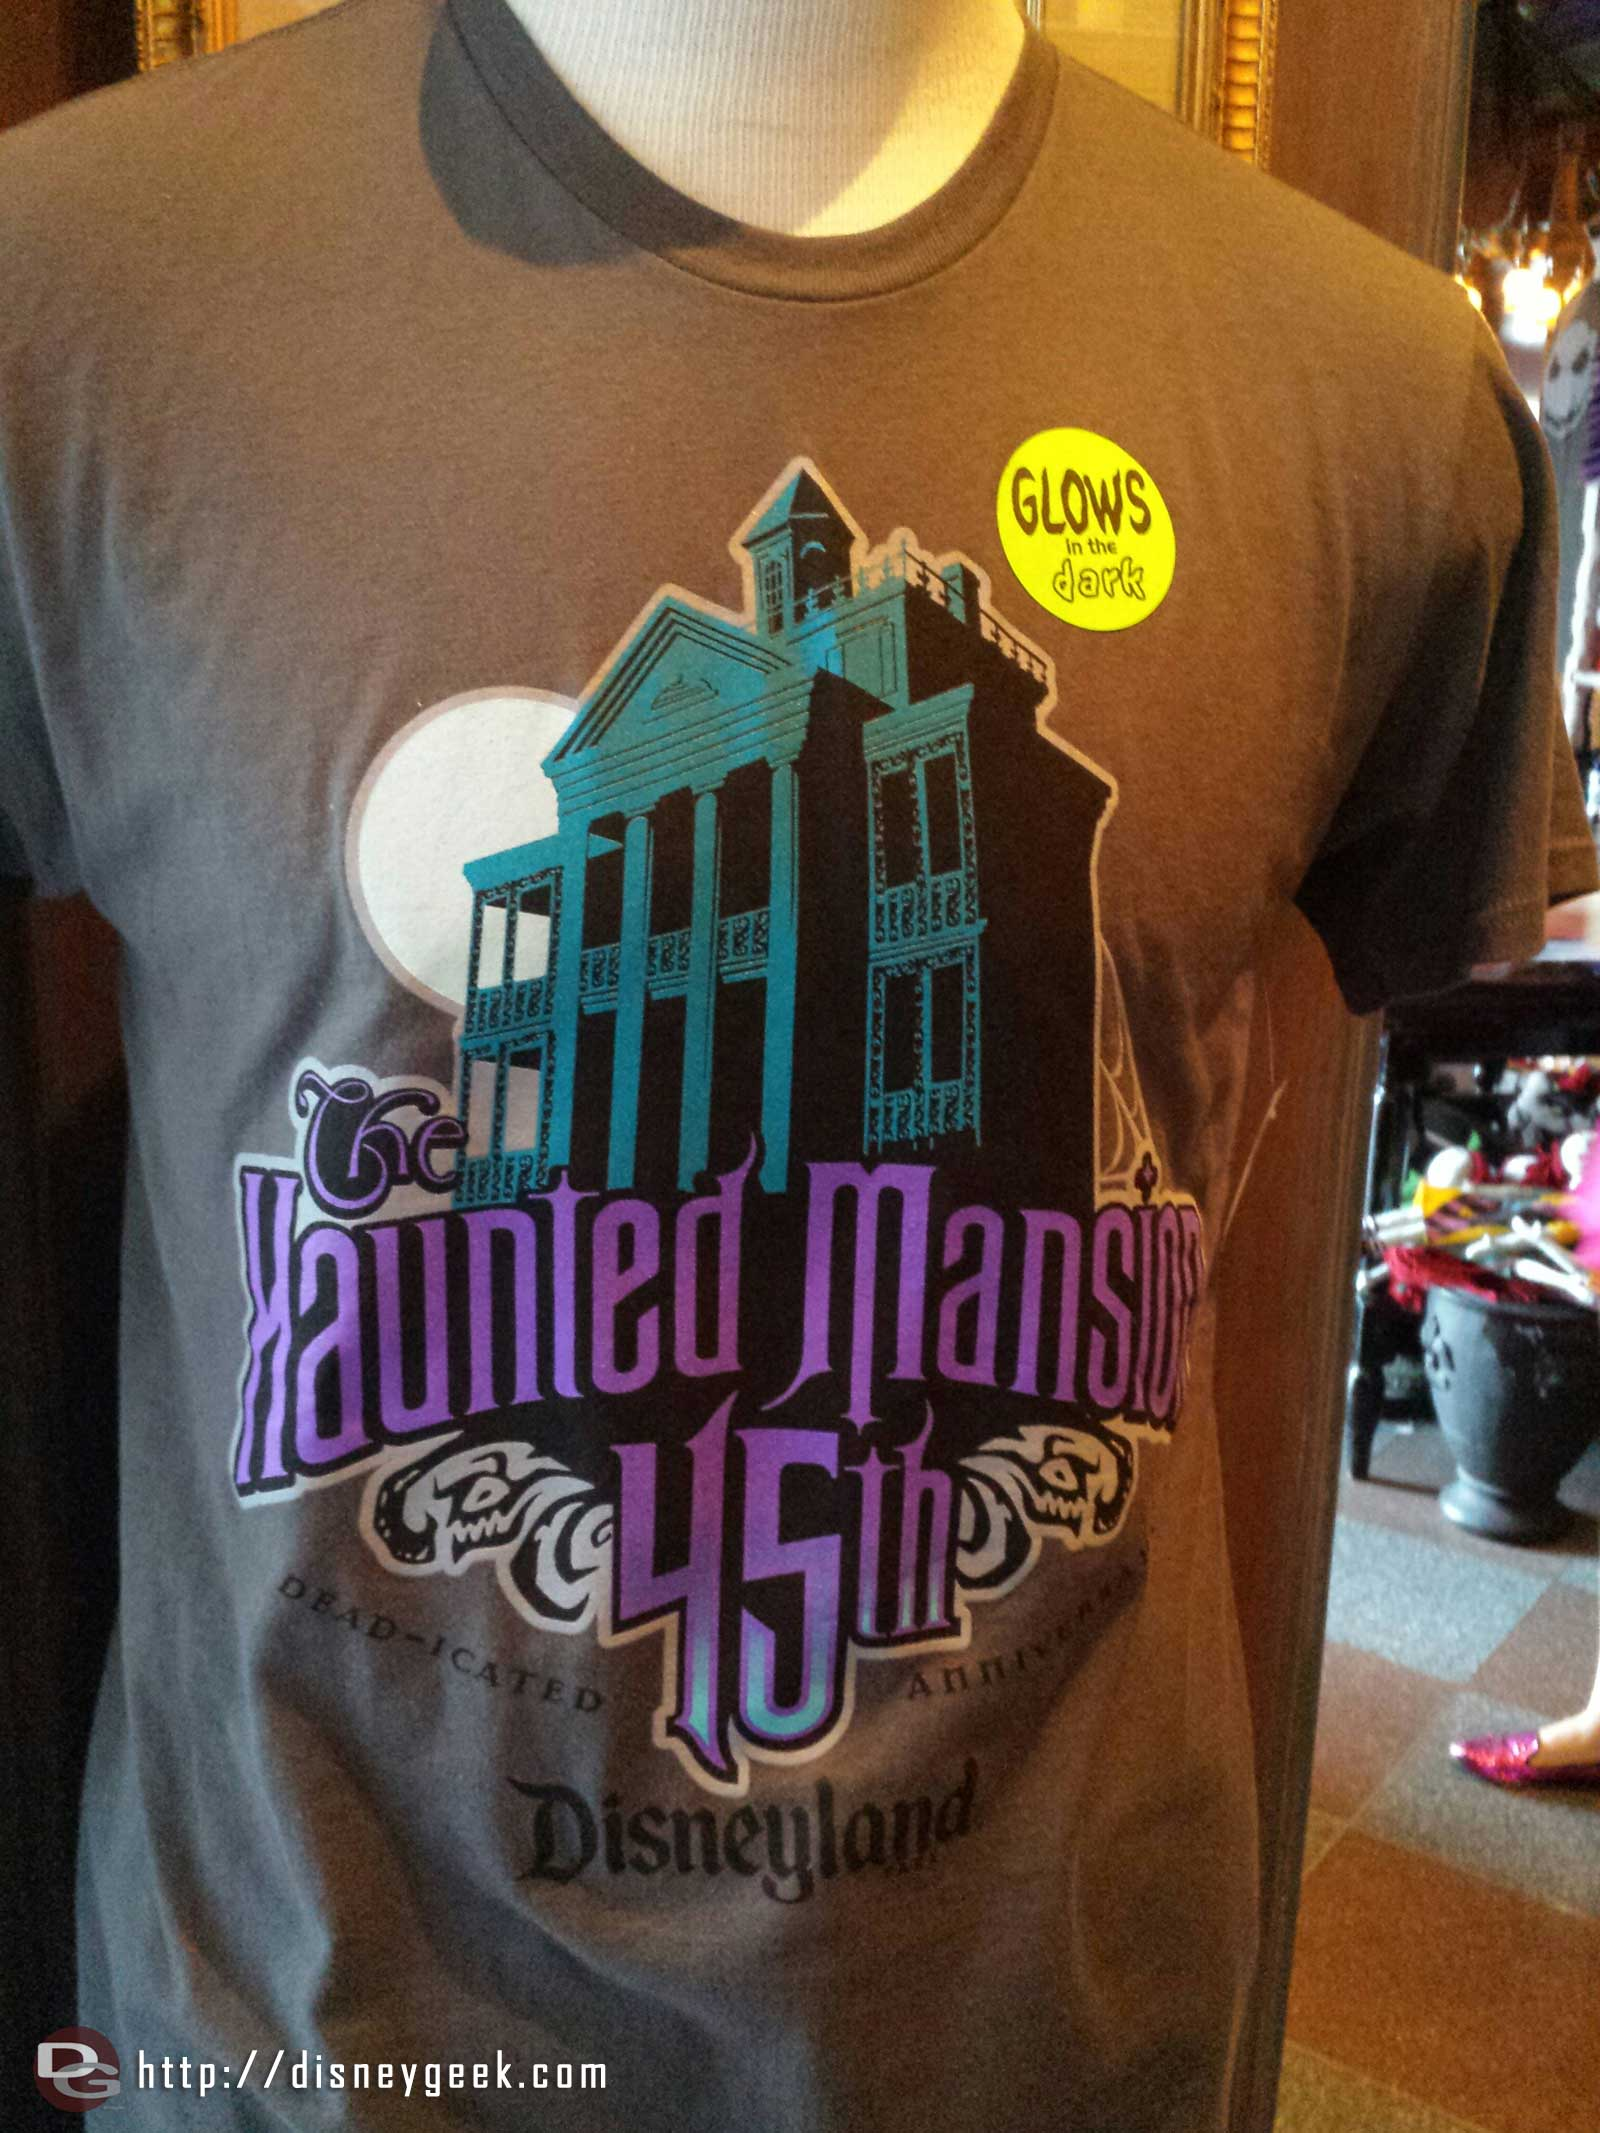 Some Haunted Mansion 45th Anniversary merchandise is sti available in New Orleans Square